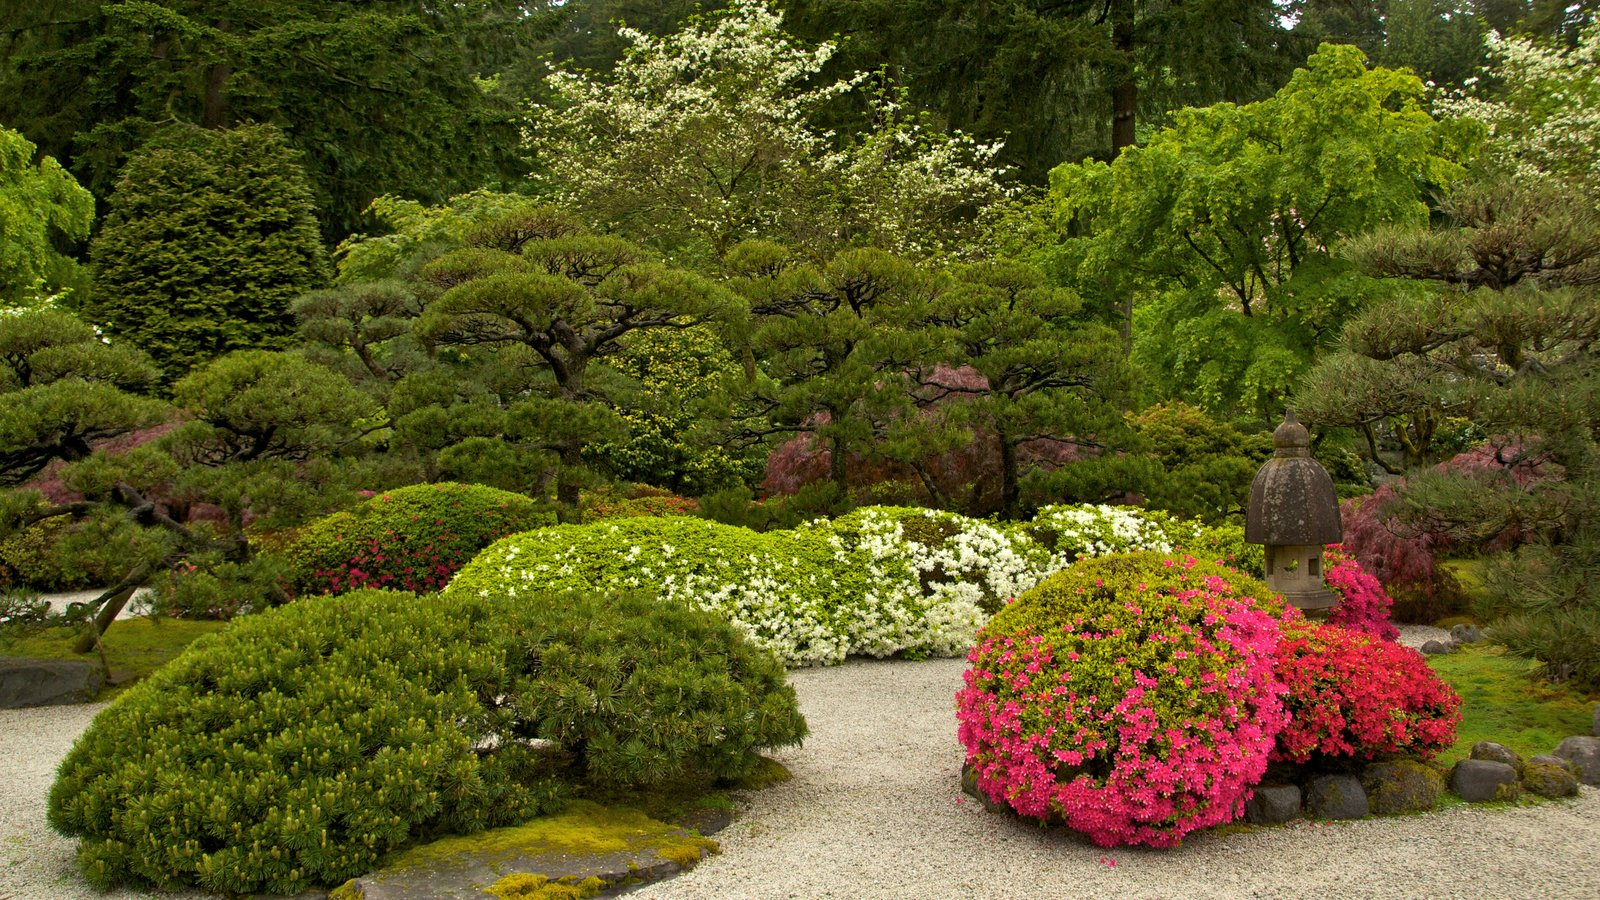 Portland Japanese Garden which includes flowers, a park and landscape views